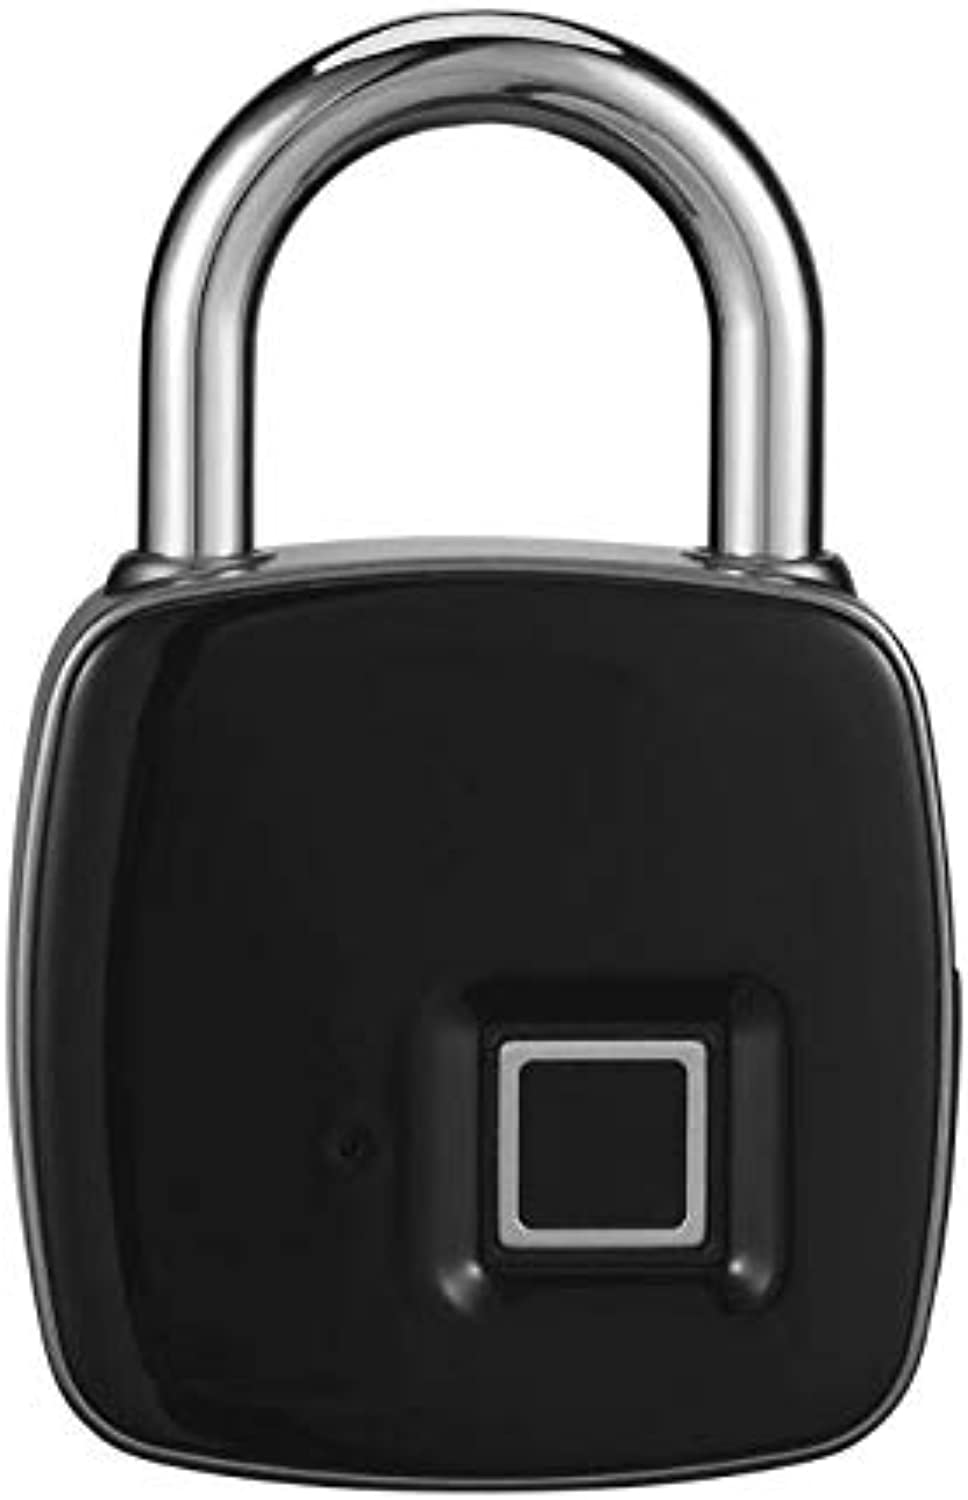 Anytek P3 Fingerprint Lock Waterproof Keyless AntiTheft Padlock Door Lock